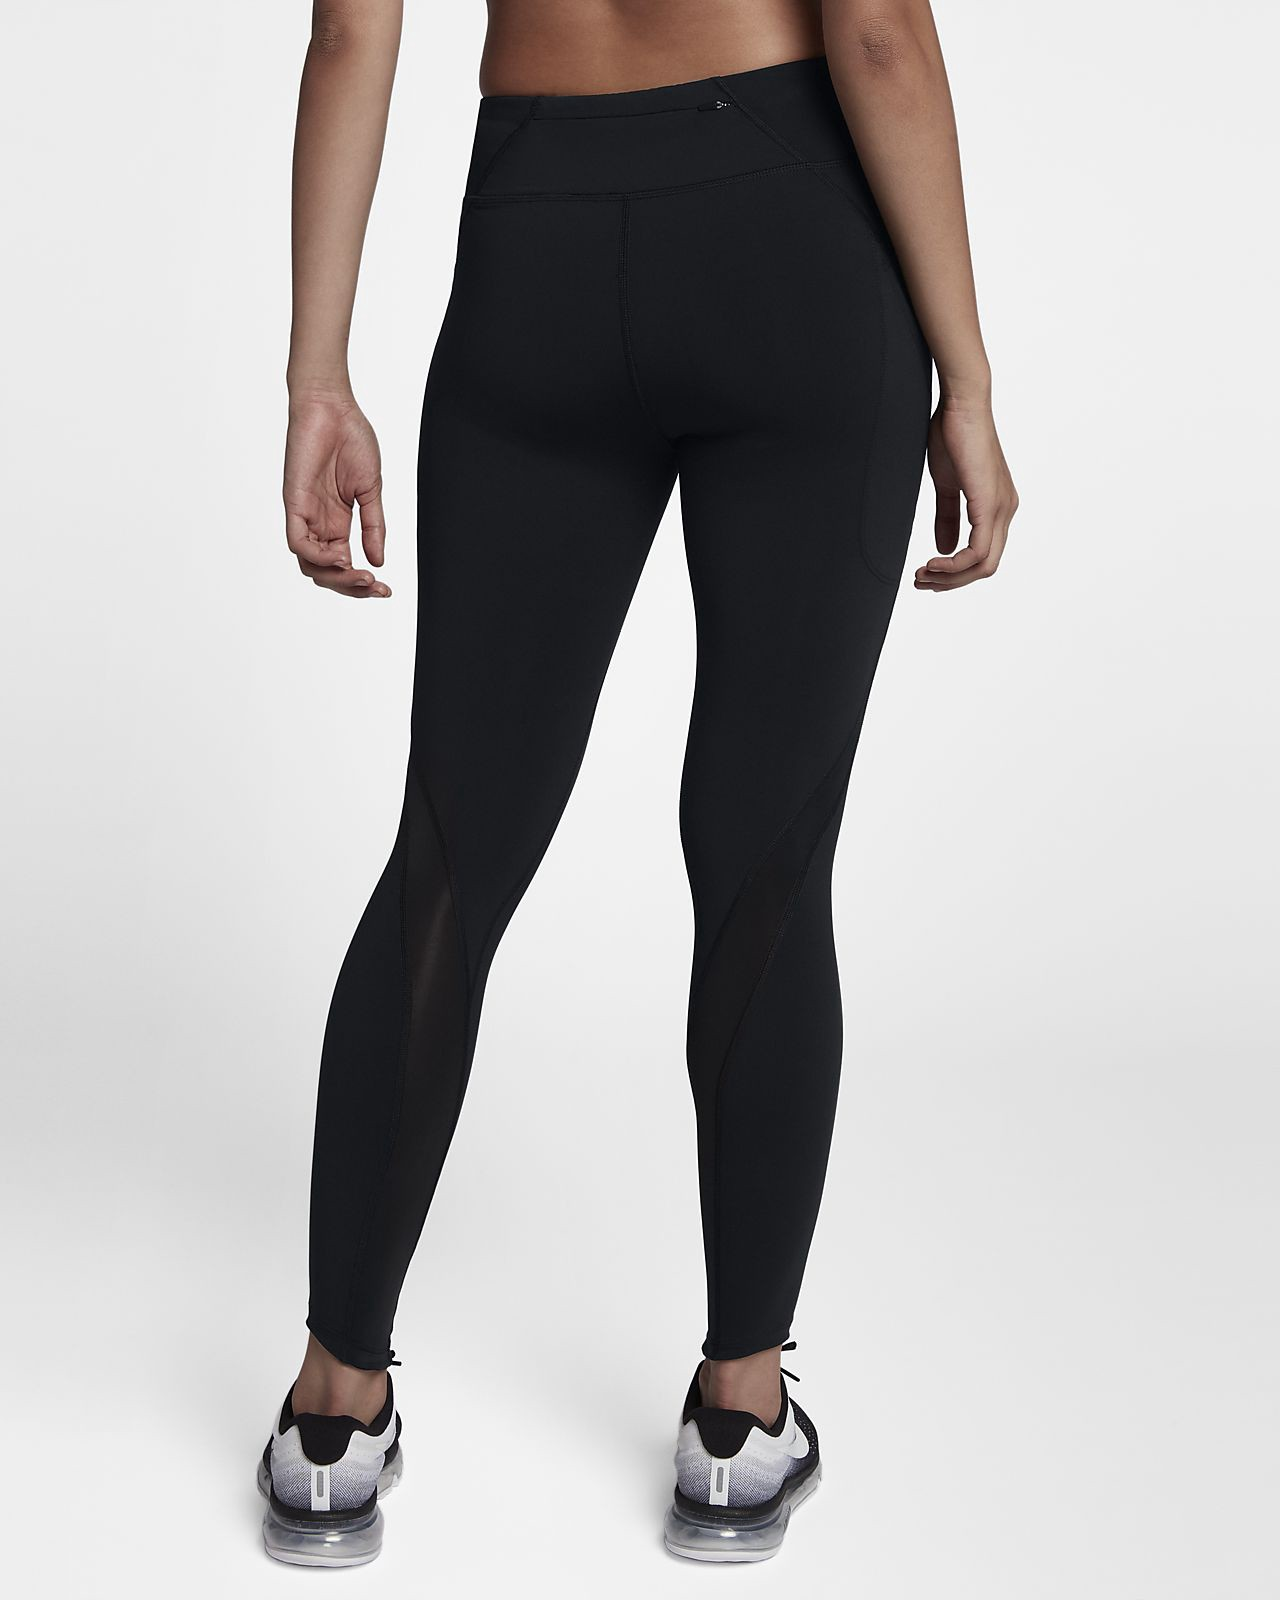 cb75bb7c604fb Nike Epic Lux Women's Mid-Rise Running Tights by Nike in 2018 ...